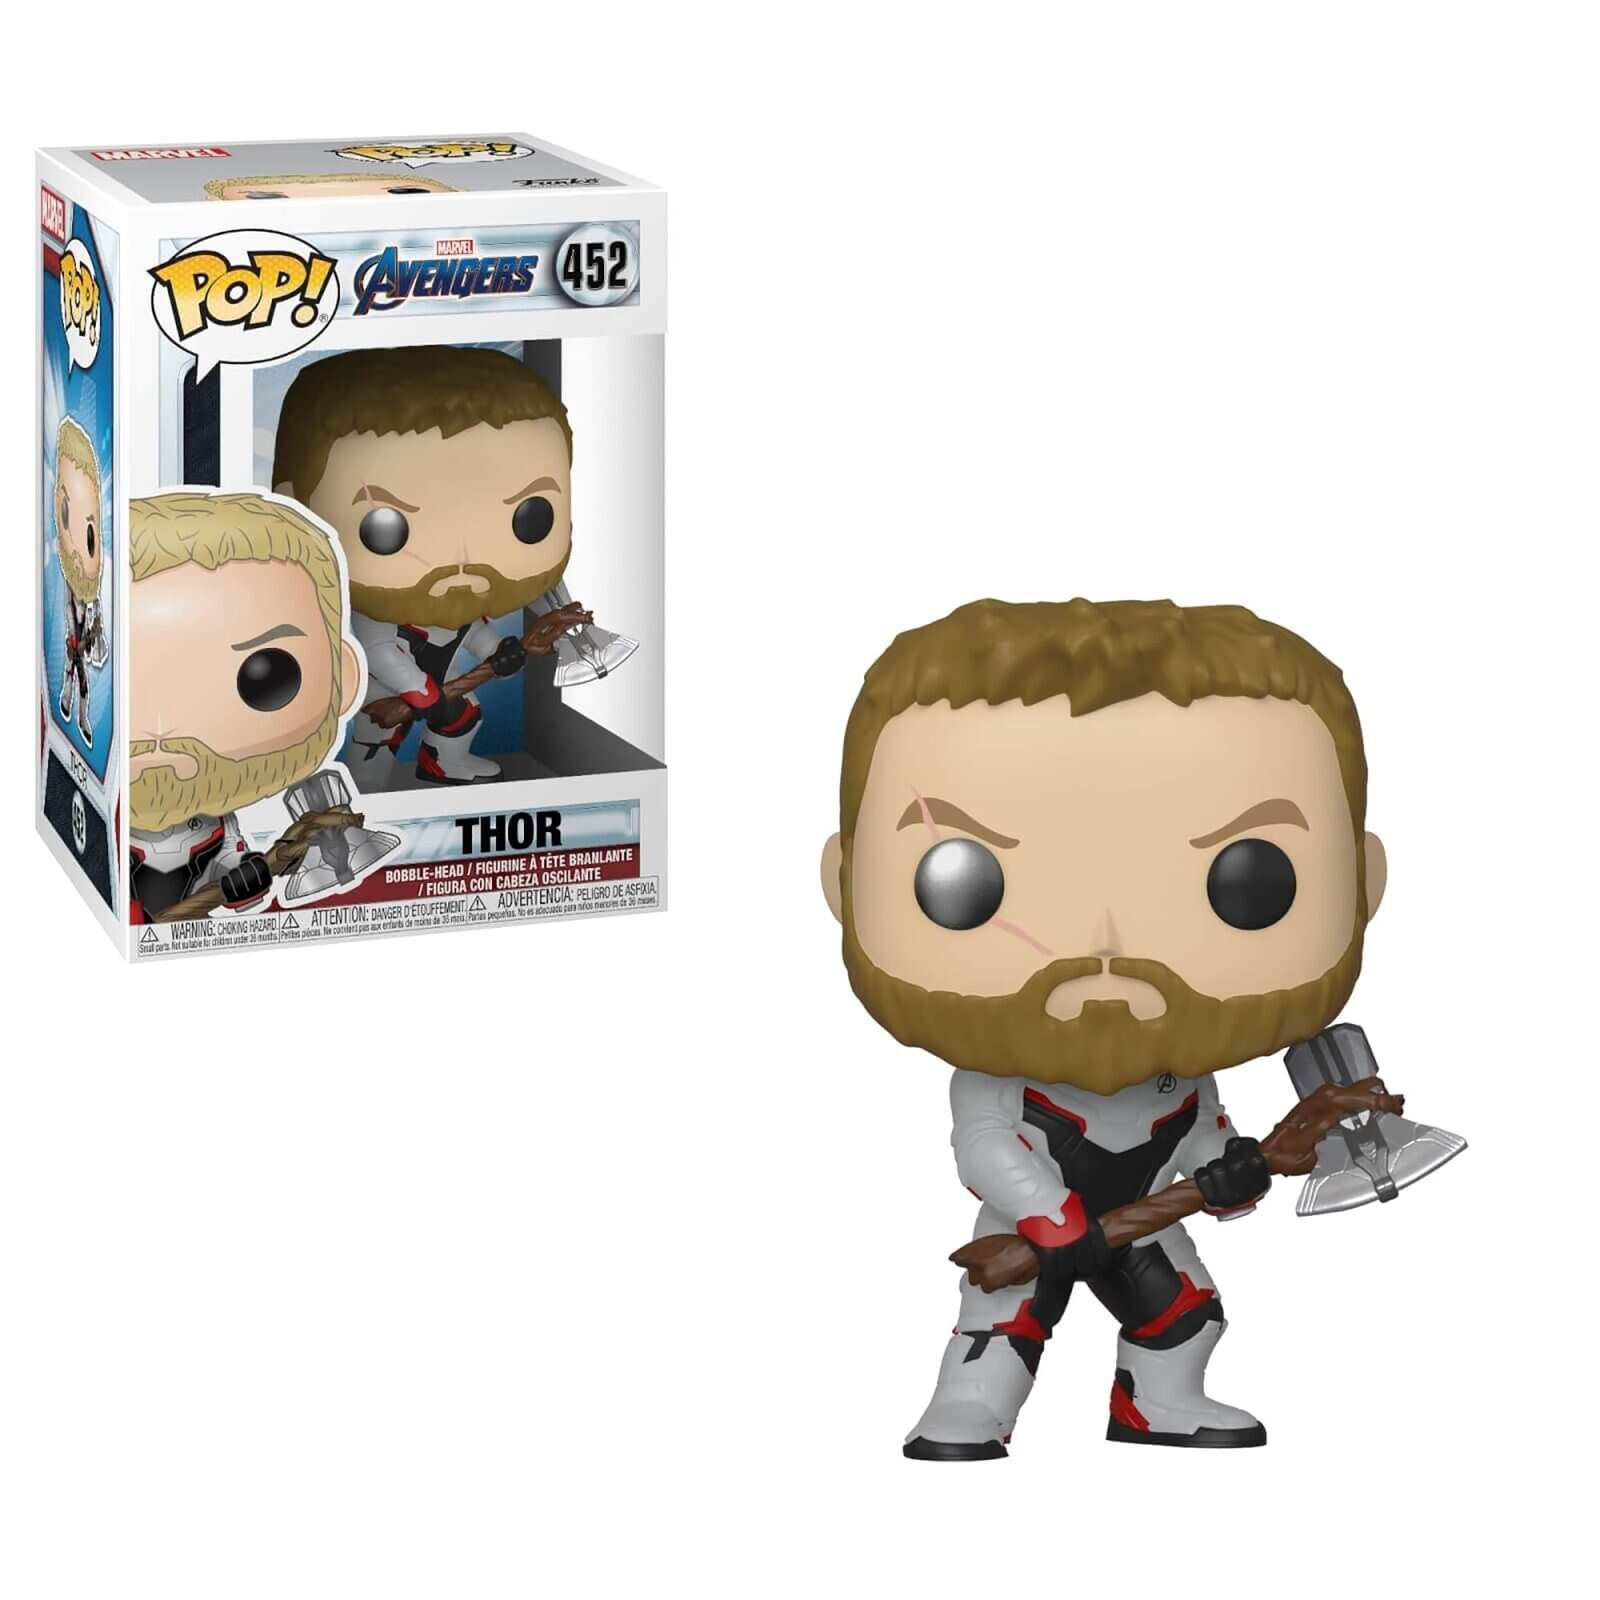 Funko-Endgame-Pop-Marvel-Avengers-Endgame-Vinyl-Collectables-Figures thumbnail 26